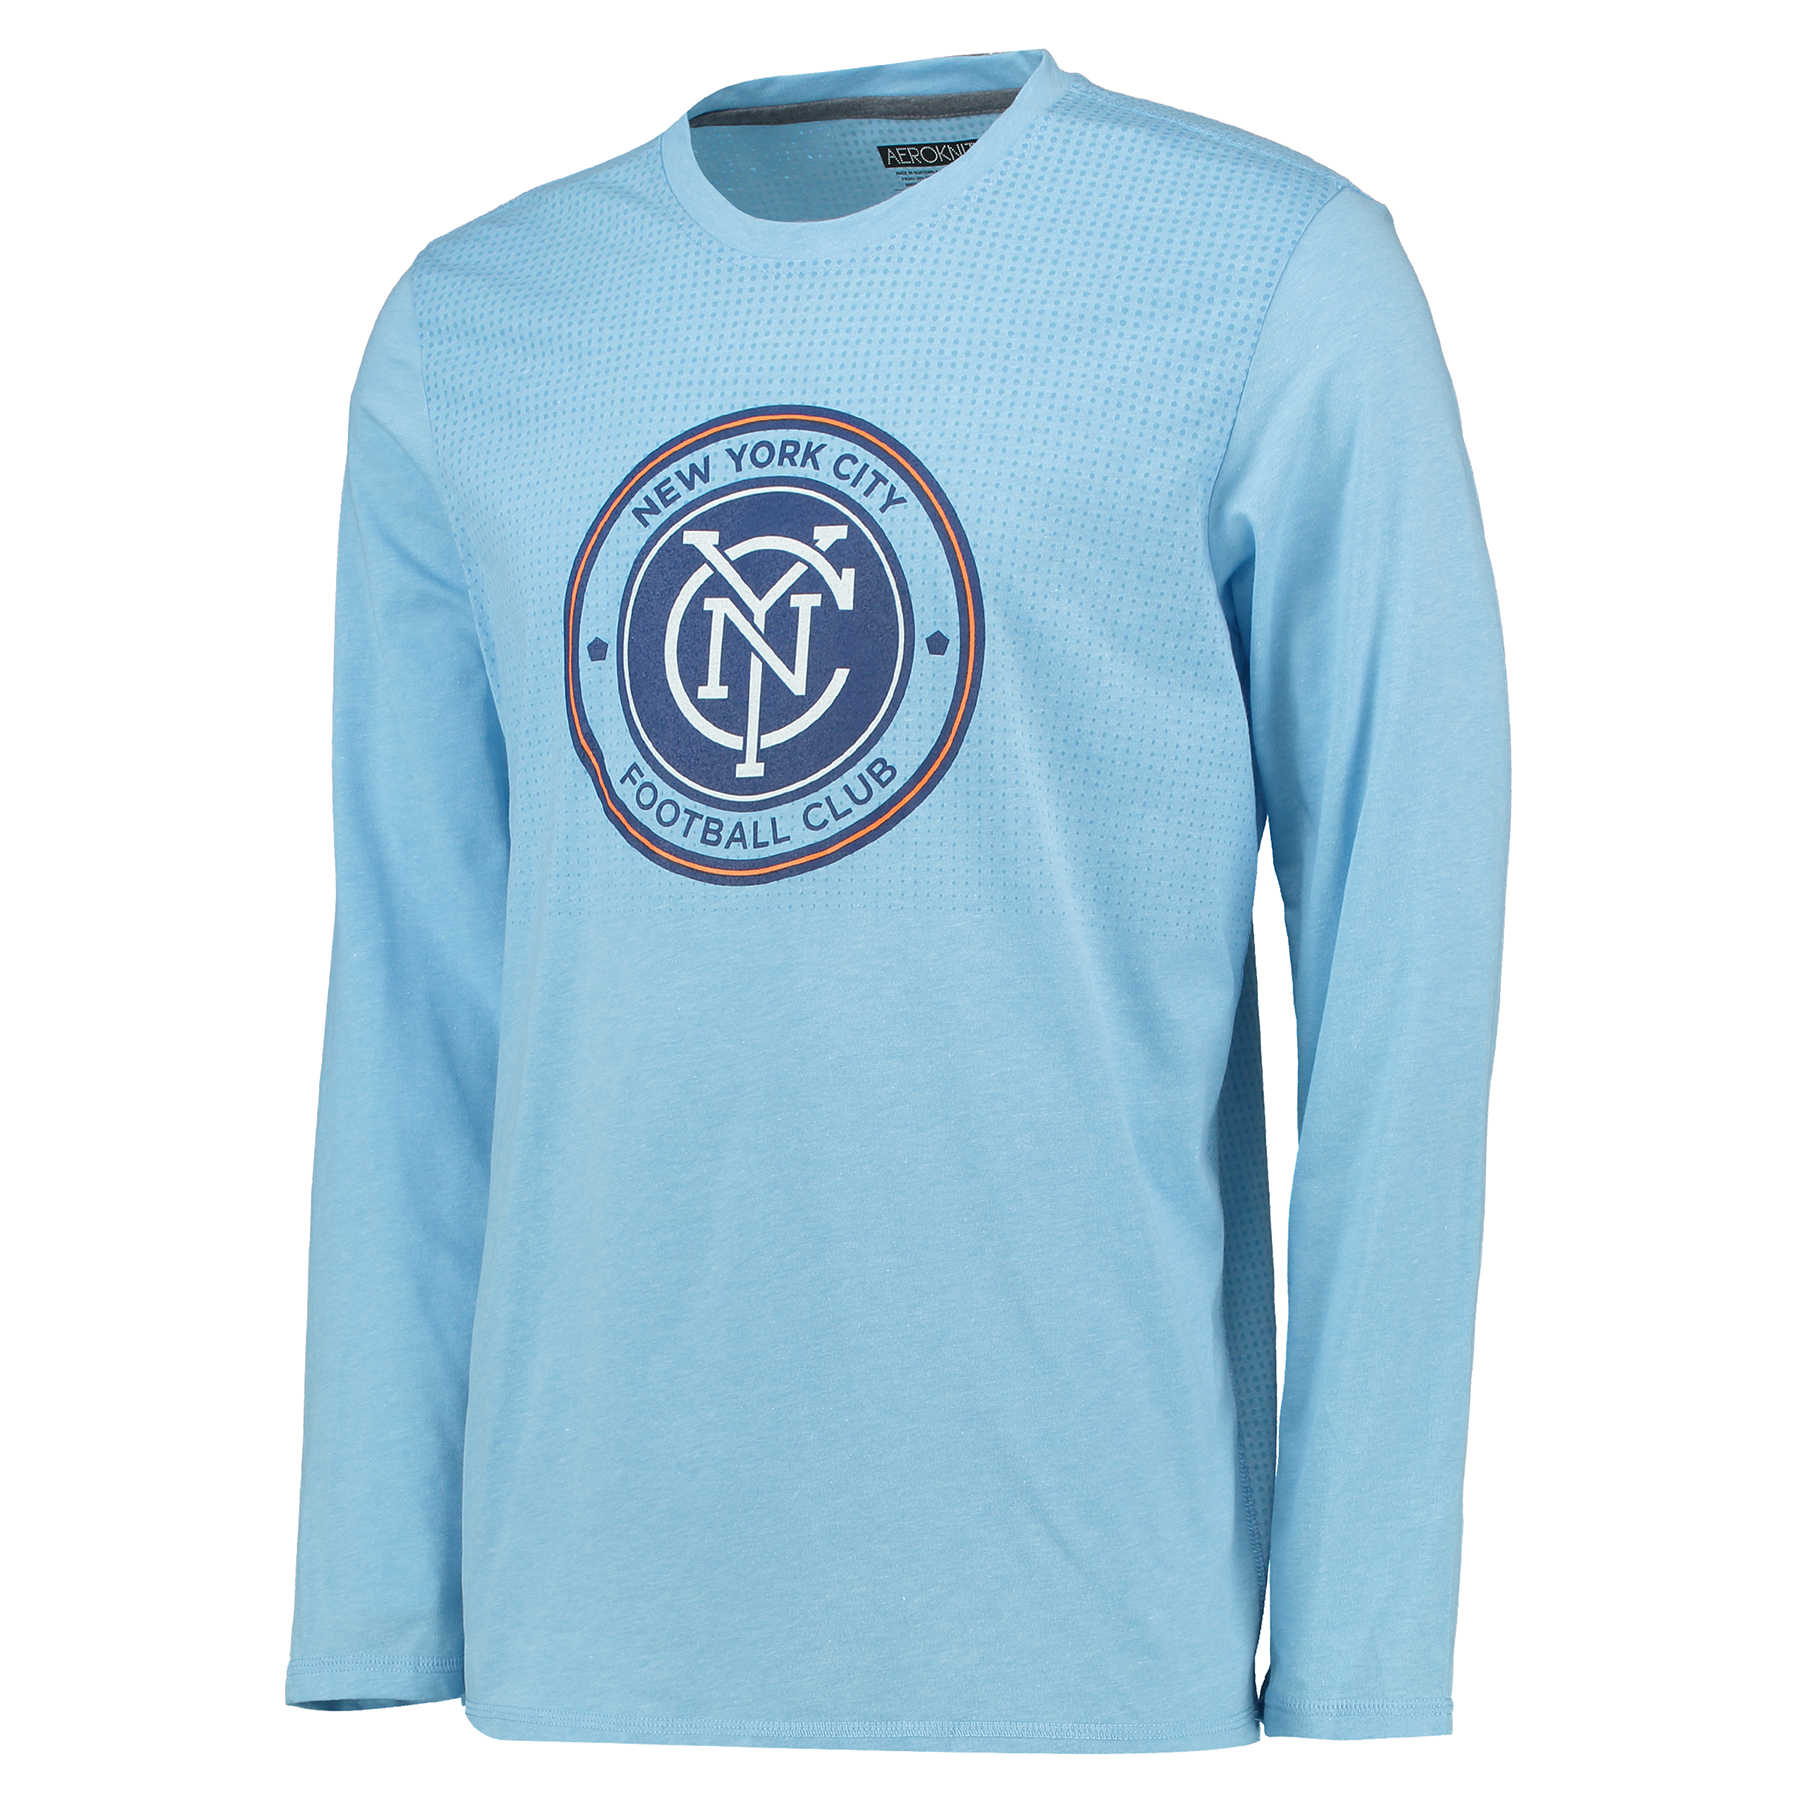 Image of New York City FC Crest Authentic T-Shirt - Long Sleeve Sky Blue, Blue